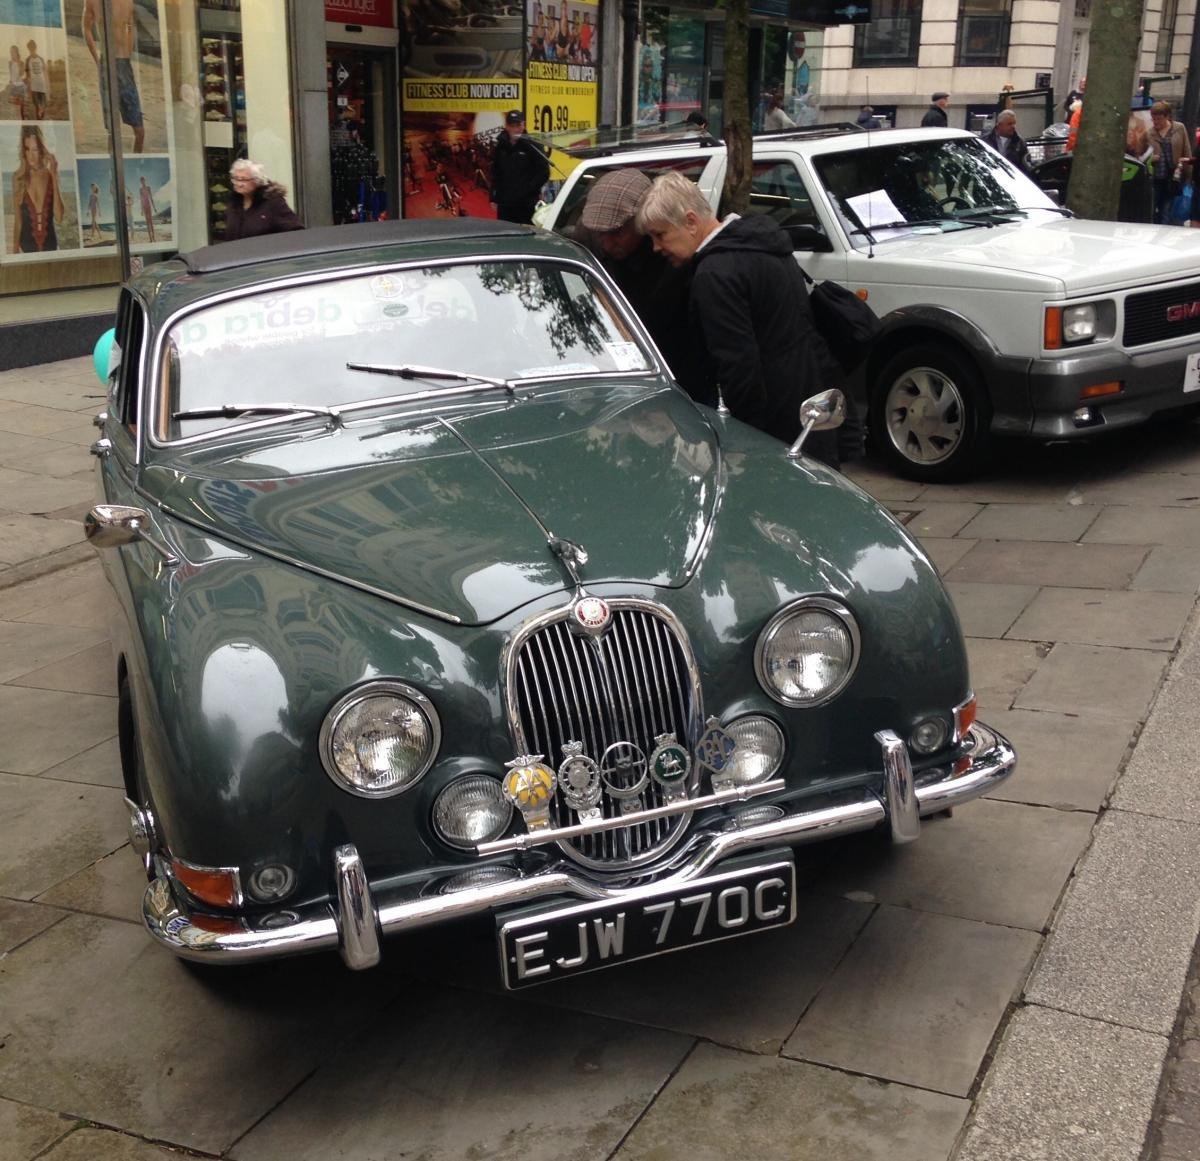 VINTAGE: A 1965 Jaguar 'S' Type at the car rally last year